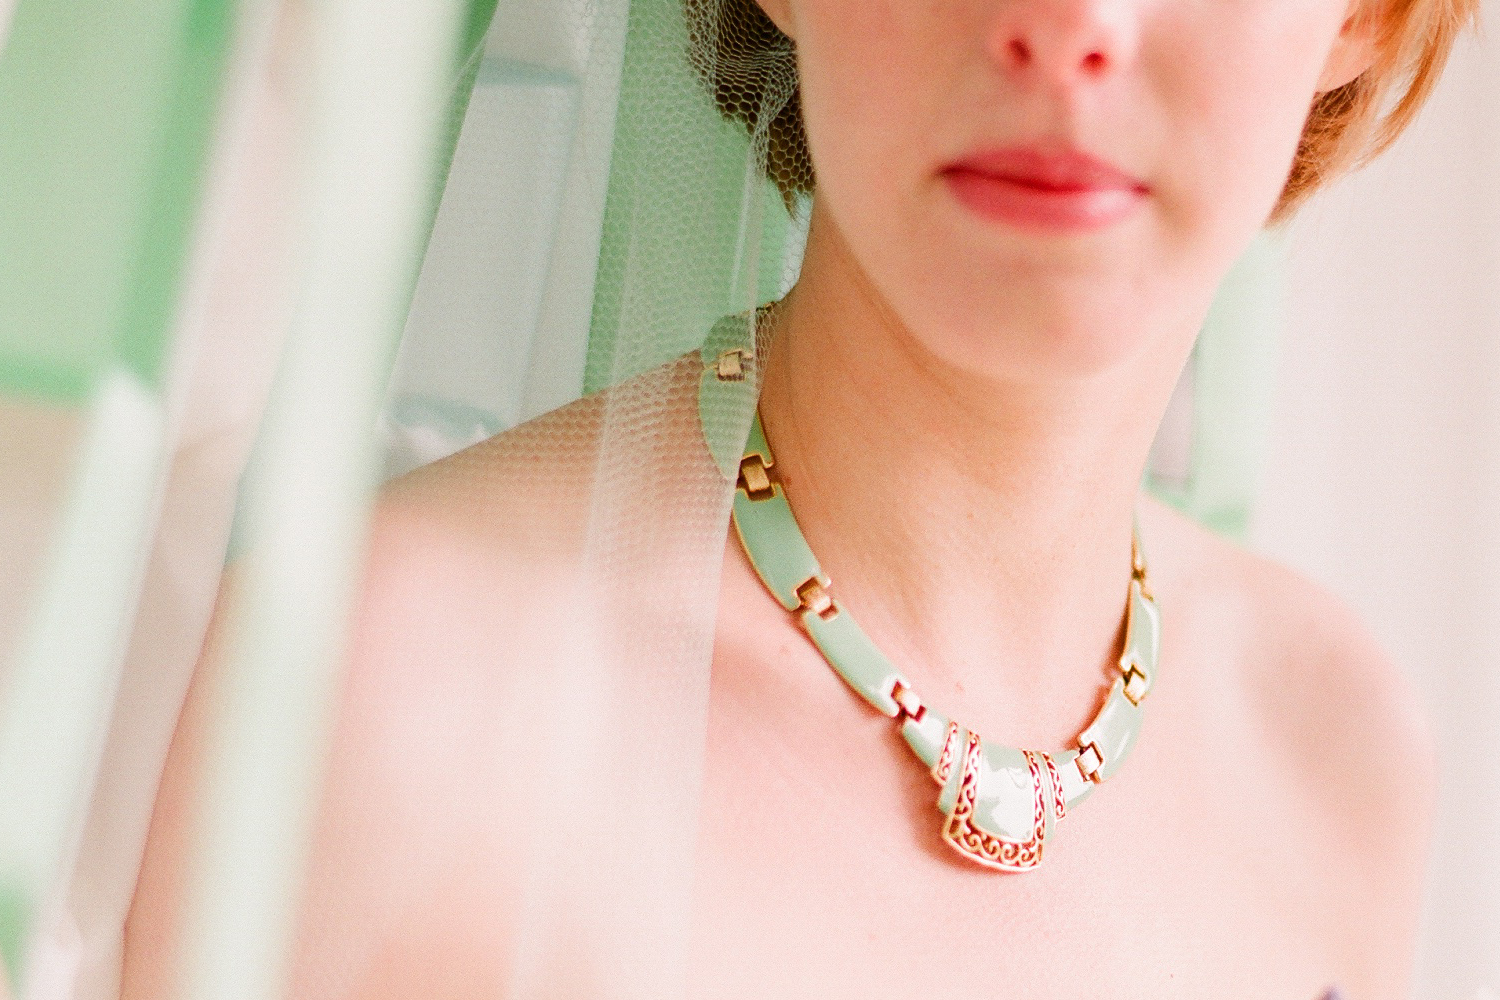 Romantic-outdoor-wedding-with-anthropologie-inspired-statement-necklace.original